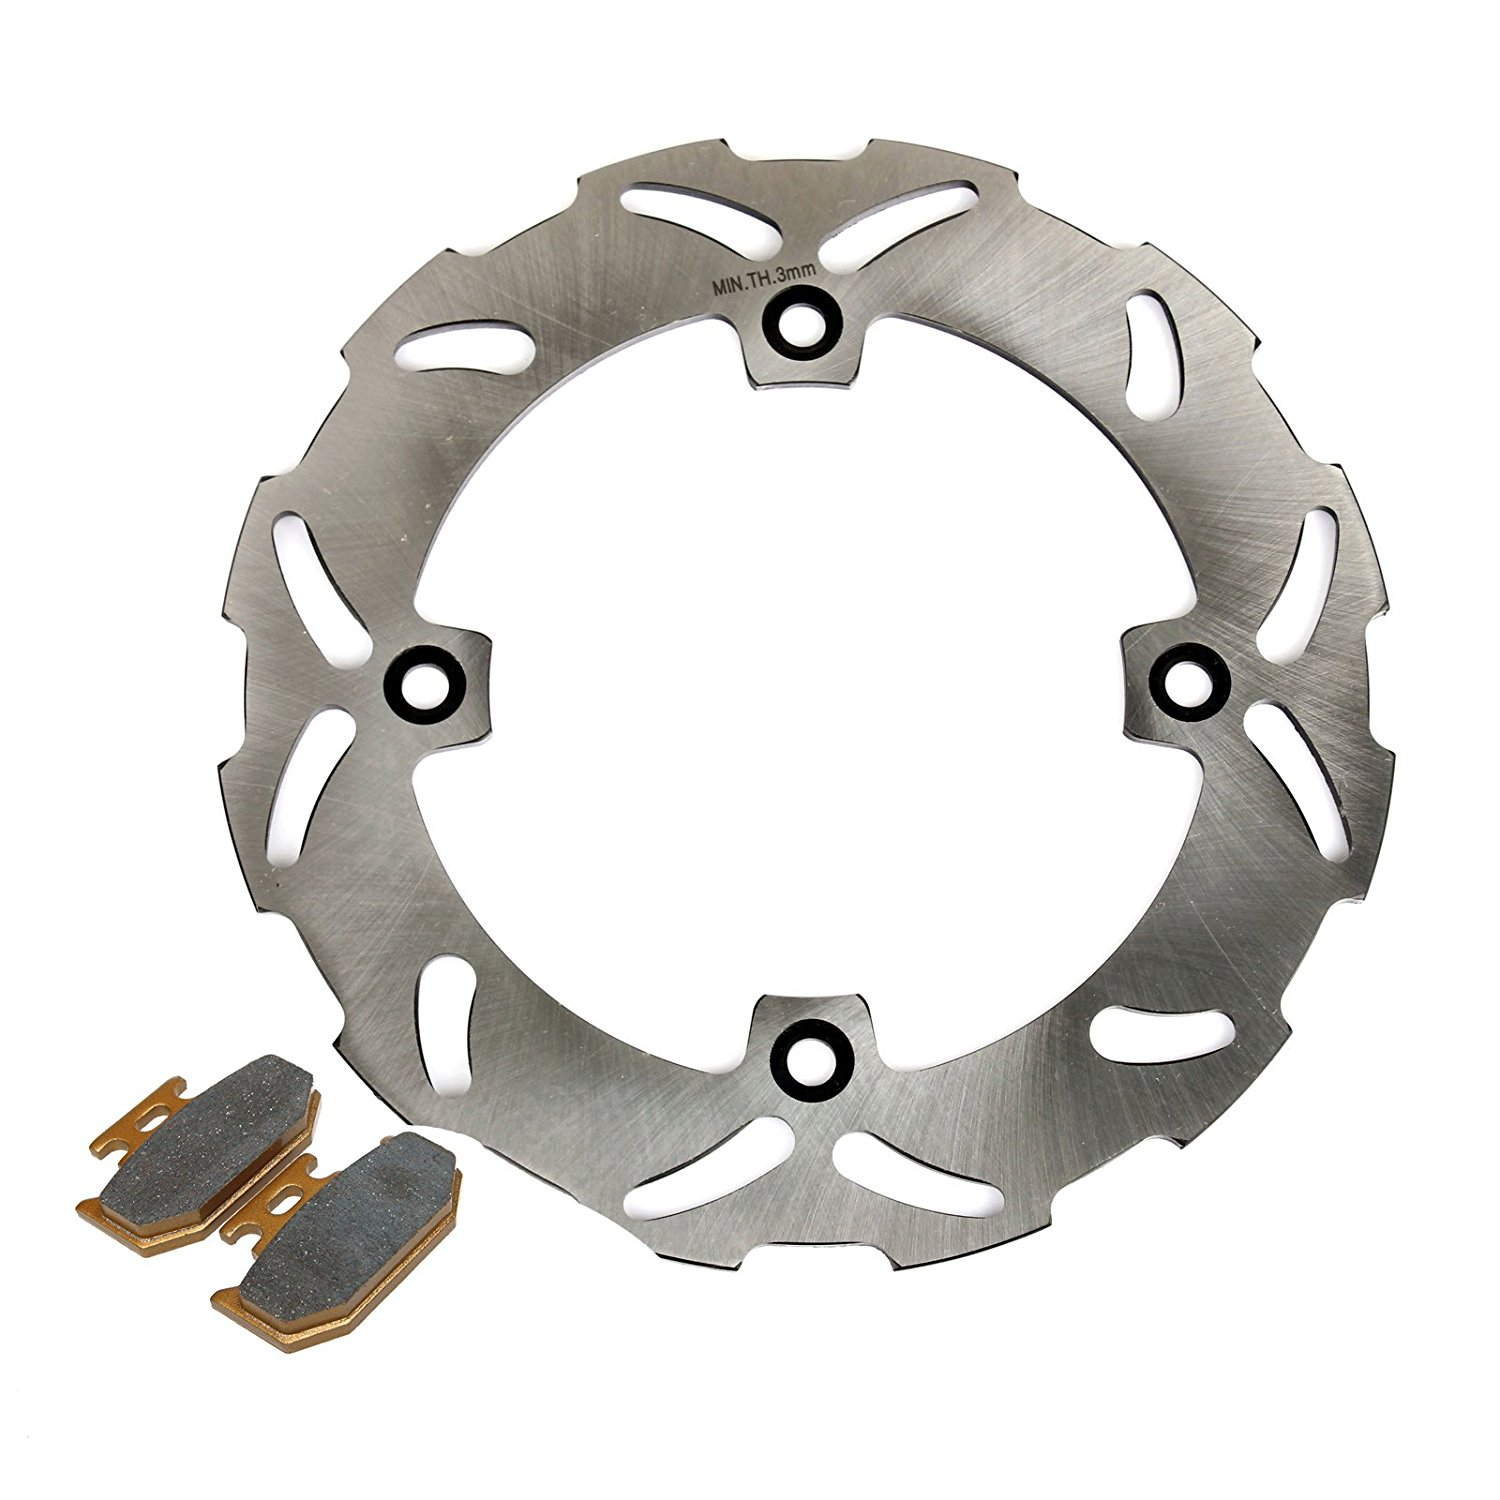 Wotefusi Motorcycle Rear Brake Disc Rotor for Suzuki Ts125 1990-1996 1991 1992 1993 1994 1995 Ts200 1989-1994 Dr250 Dr350 Do Not Fit for 1995 Suzuki Dr350 Street.